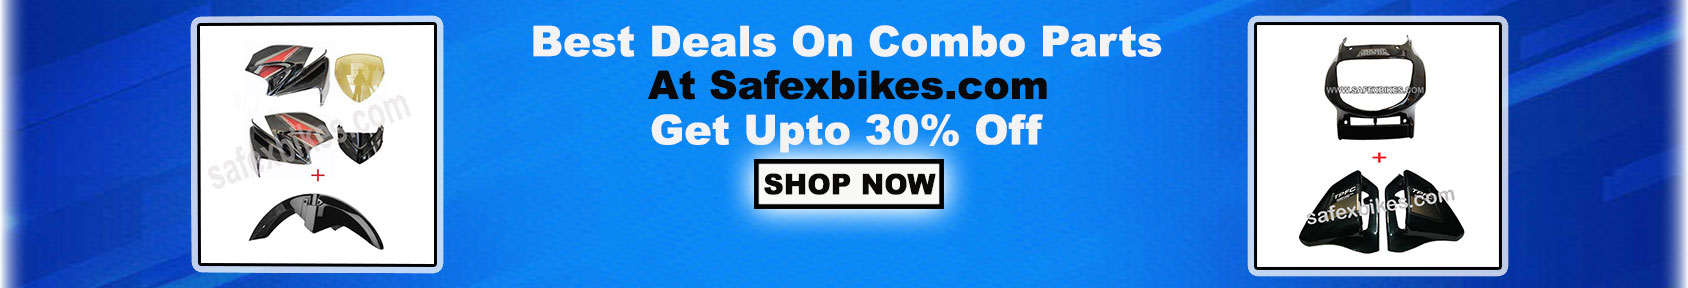 Special offers on Genuine Motorcycle Spare Parts And Accessories - Buy Combo parts and get upto 30 percent off